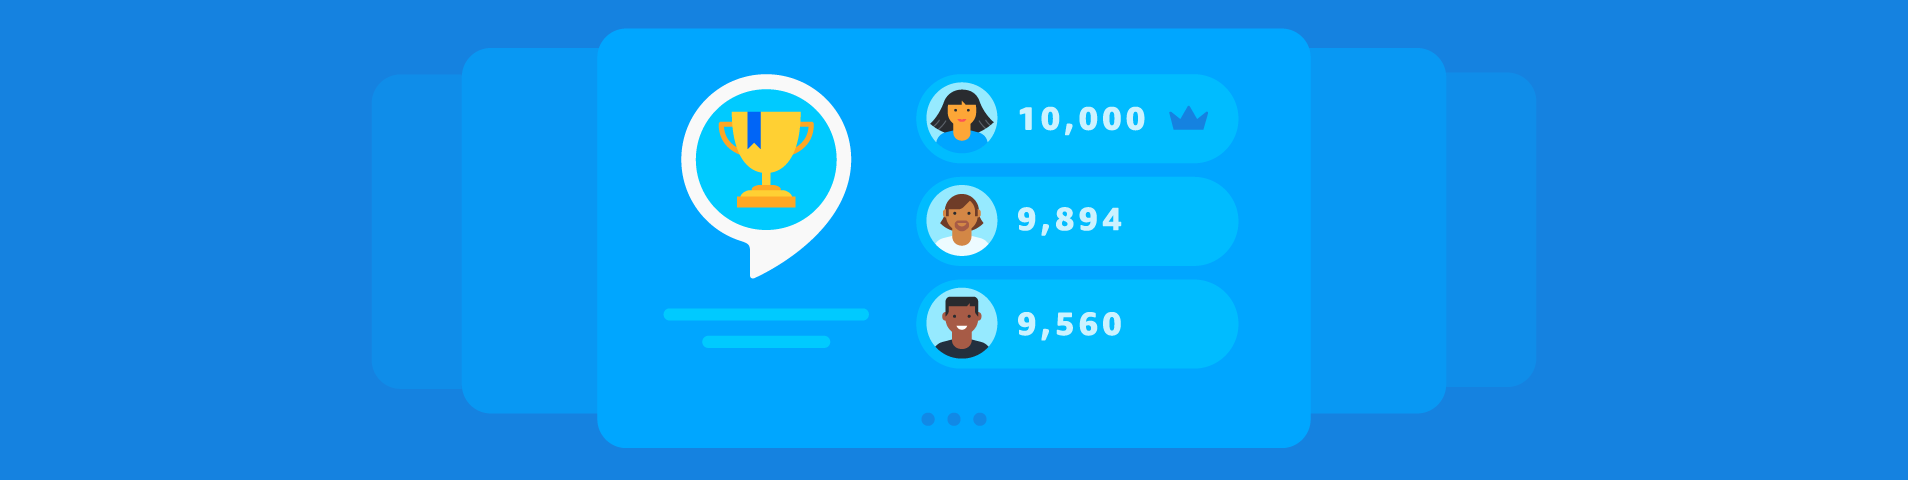 Easily Integrate Leaderboards into Your Game Skills Using